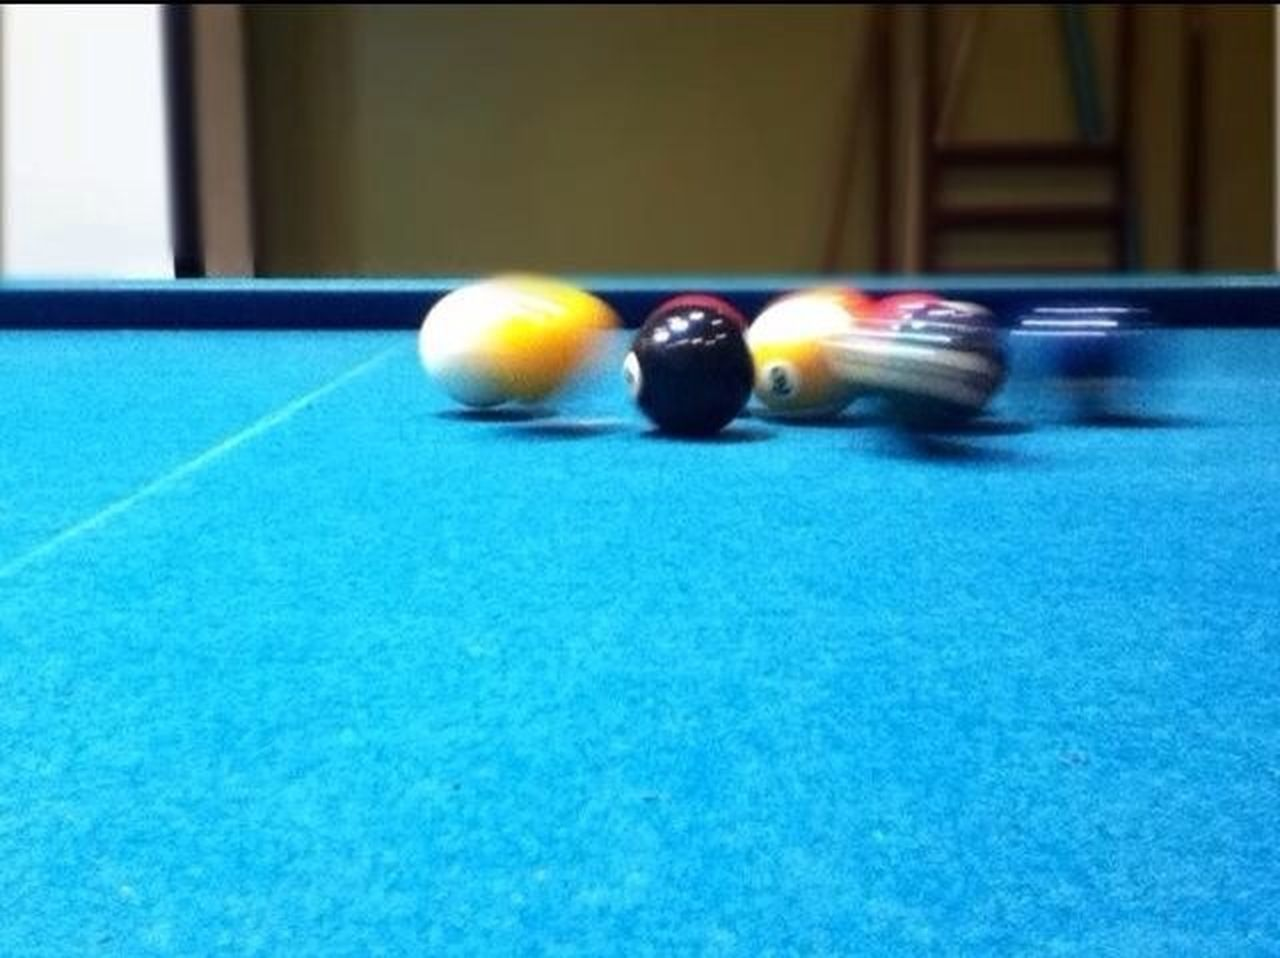 sport, pool ball, indoors, motion, ball, pool table, sports equipment, blurred motion, pool - cue sport, leisure activity, no people, snooker ball, close-up, snooker, day, pool cue